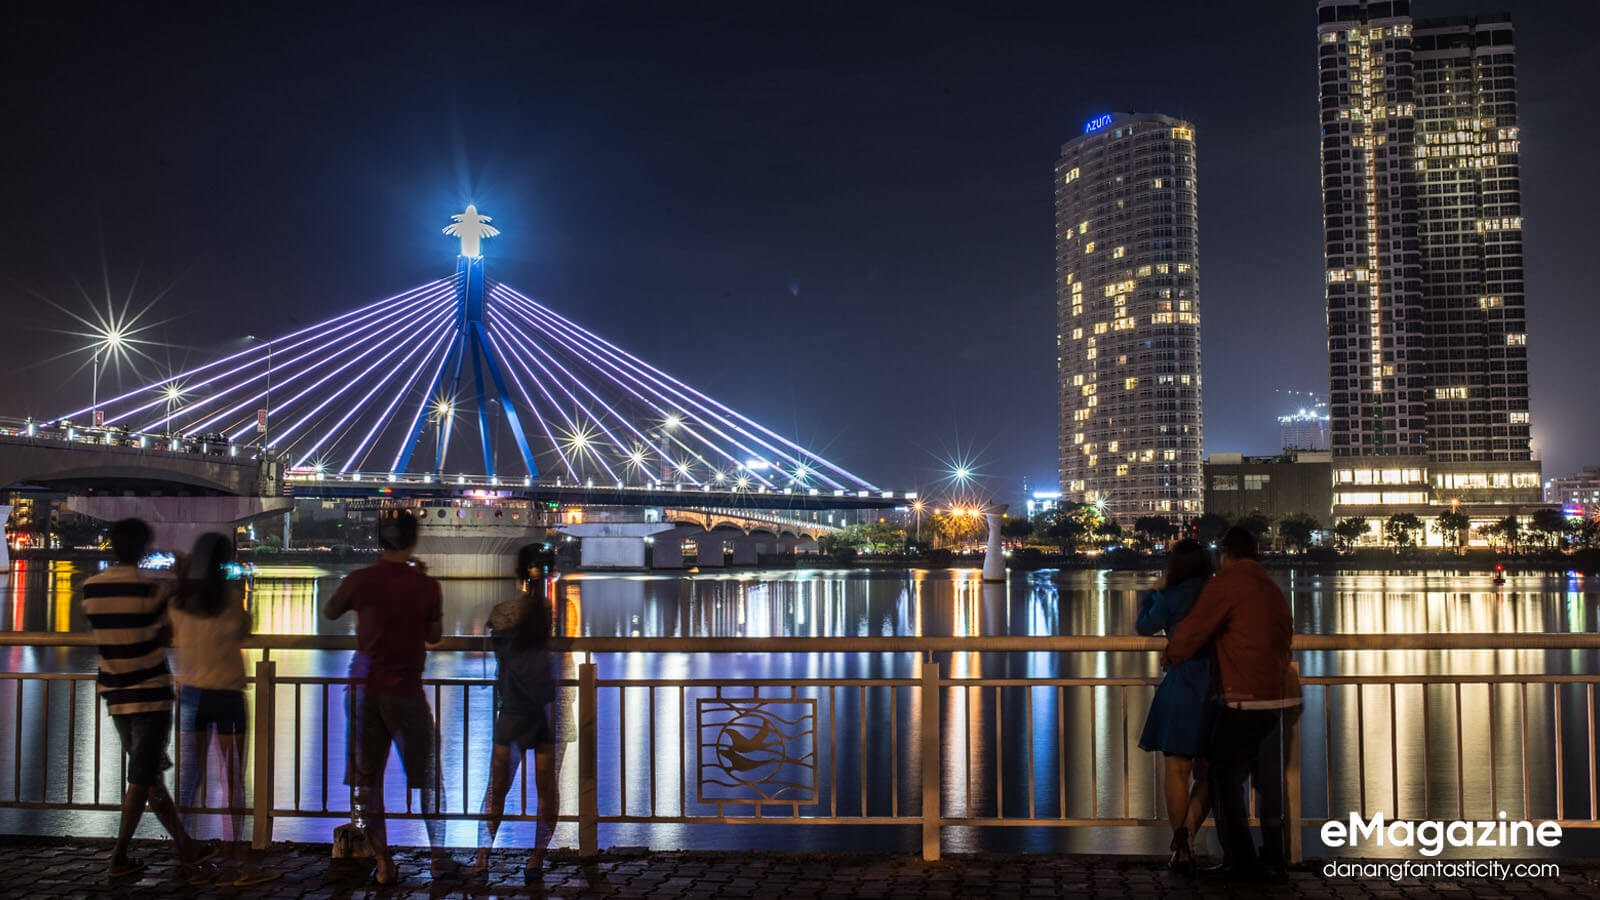 The-dazzling-beauty-of-Han-River-Bridge-under-city-lights-vẻ-đẹp-của-cầu-sông-Hàn-vào-ban-đêm-Han-River-Bridge-DN-residences-pride